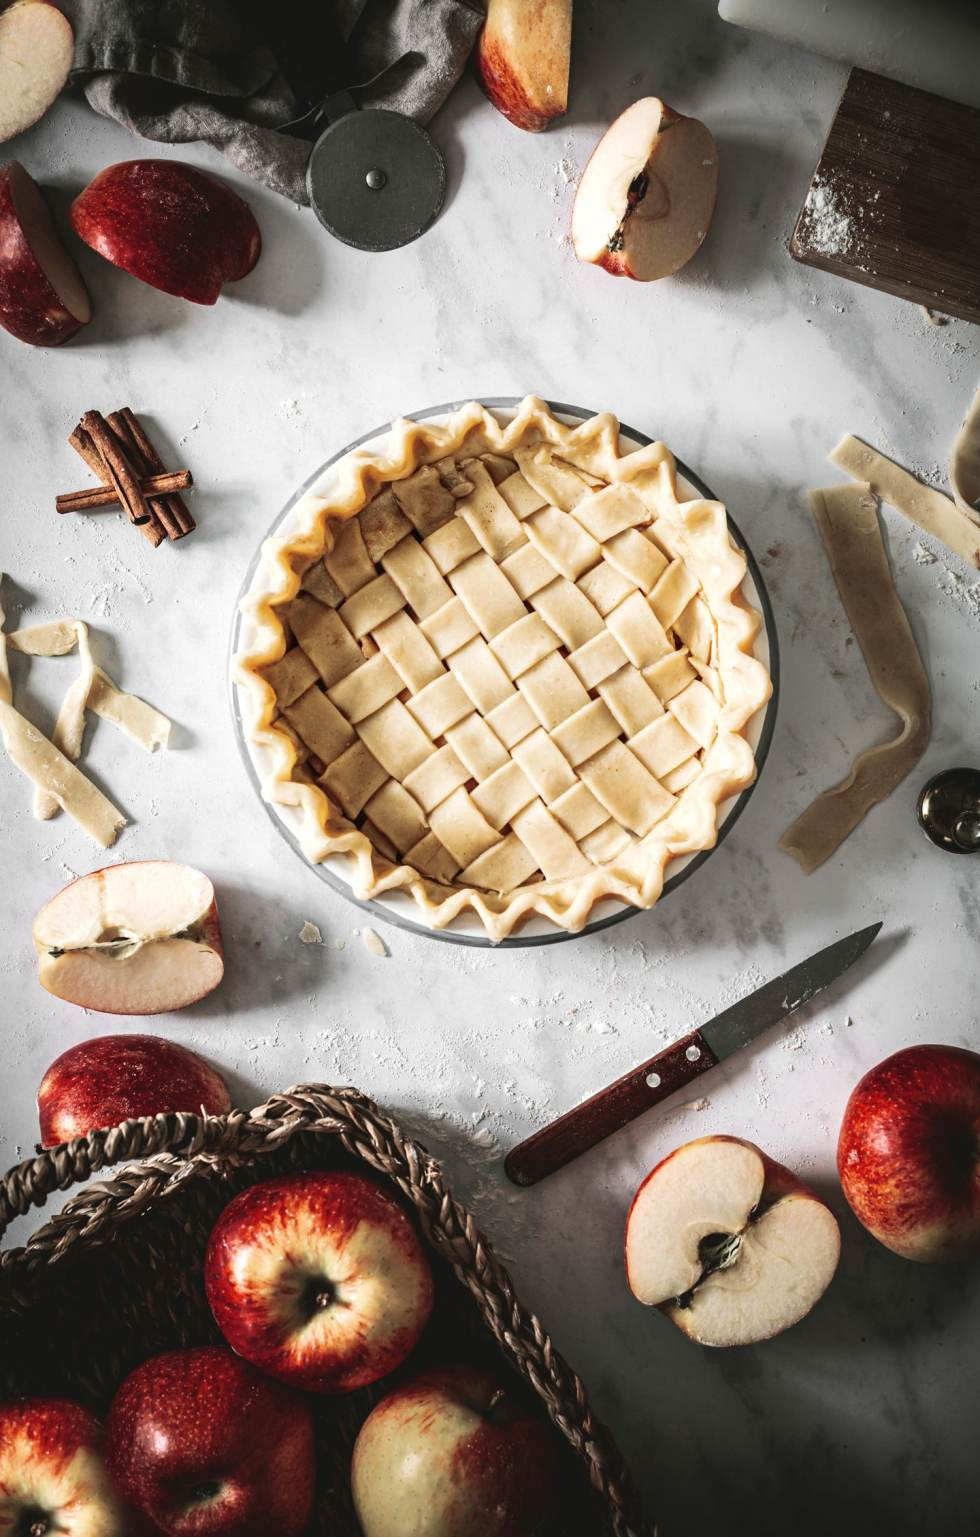 How to make the apple pie